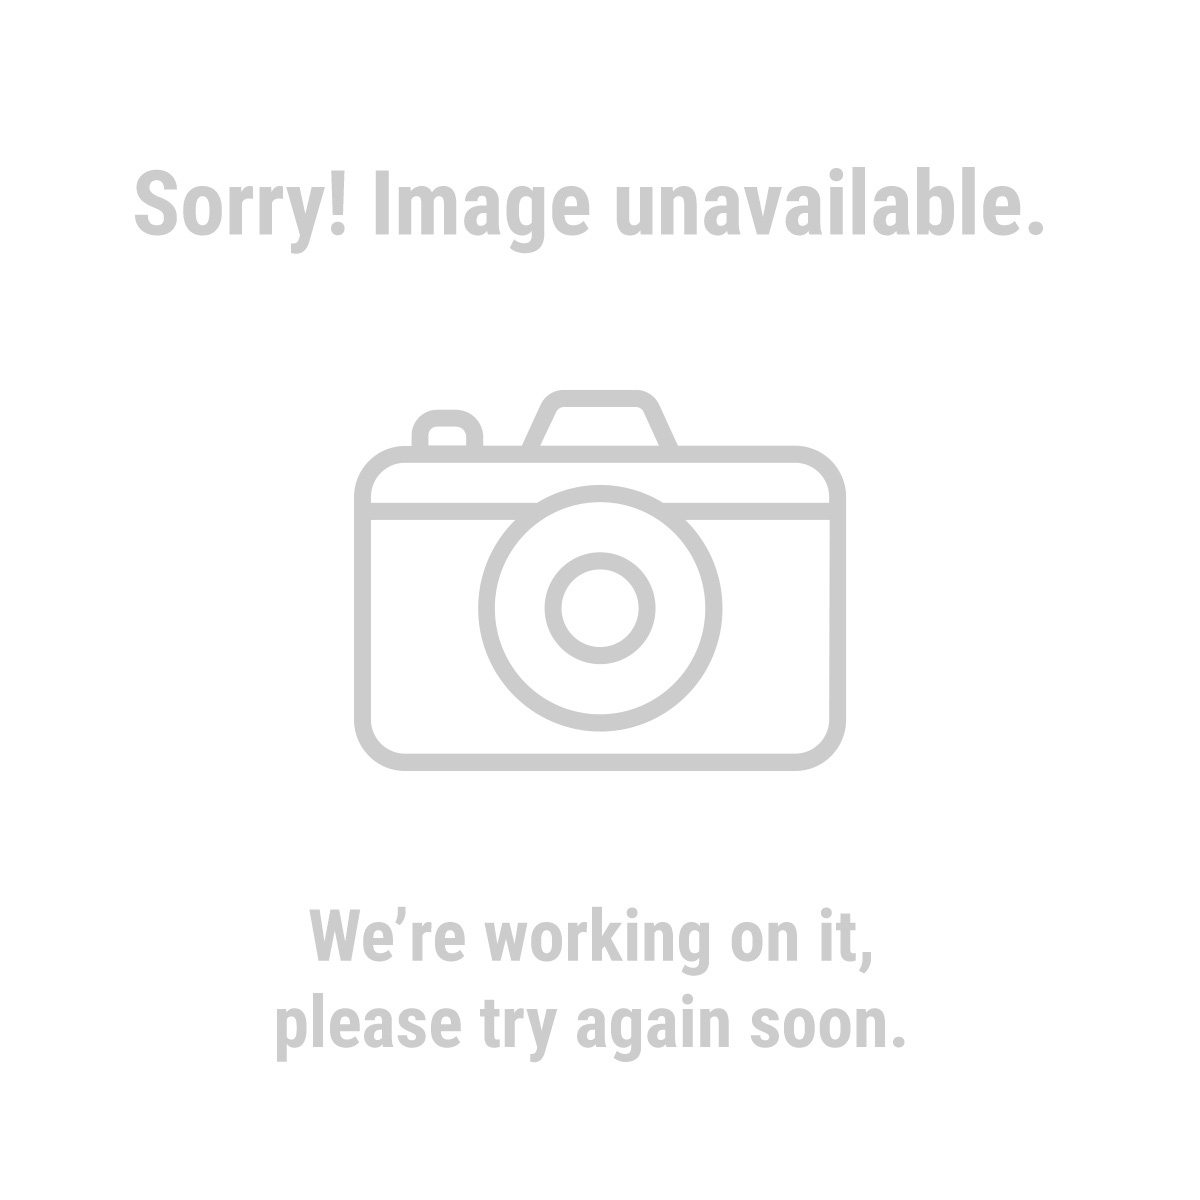 "Chicago Electric Welding Systems 44877 0.035"" E71T-GS Flux Core Welding Wire, 2 Lbs."